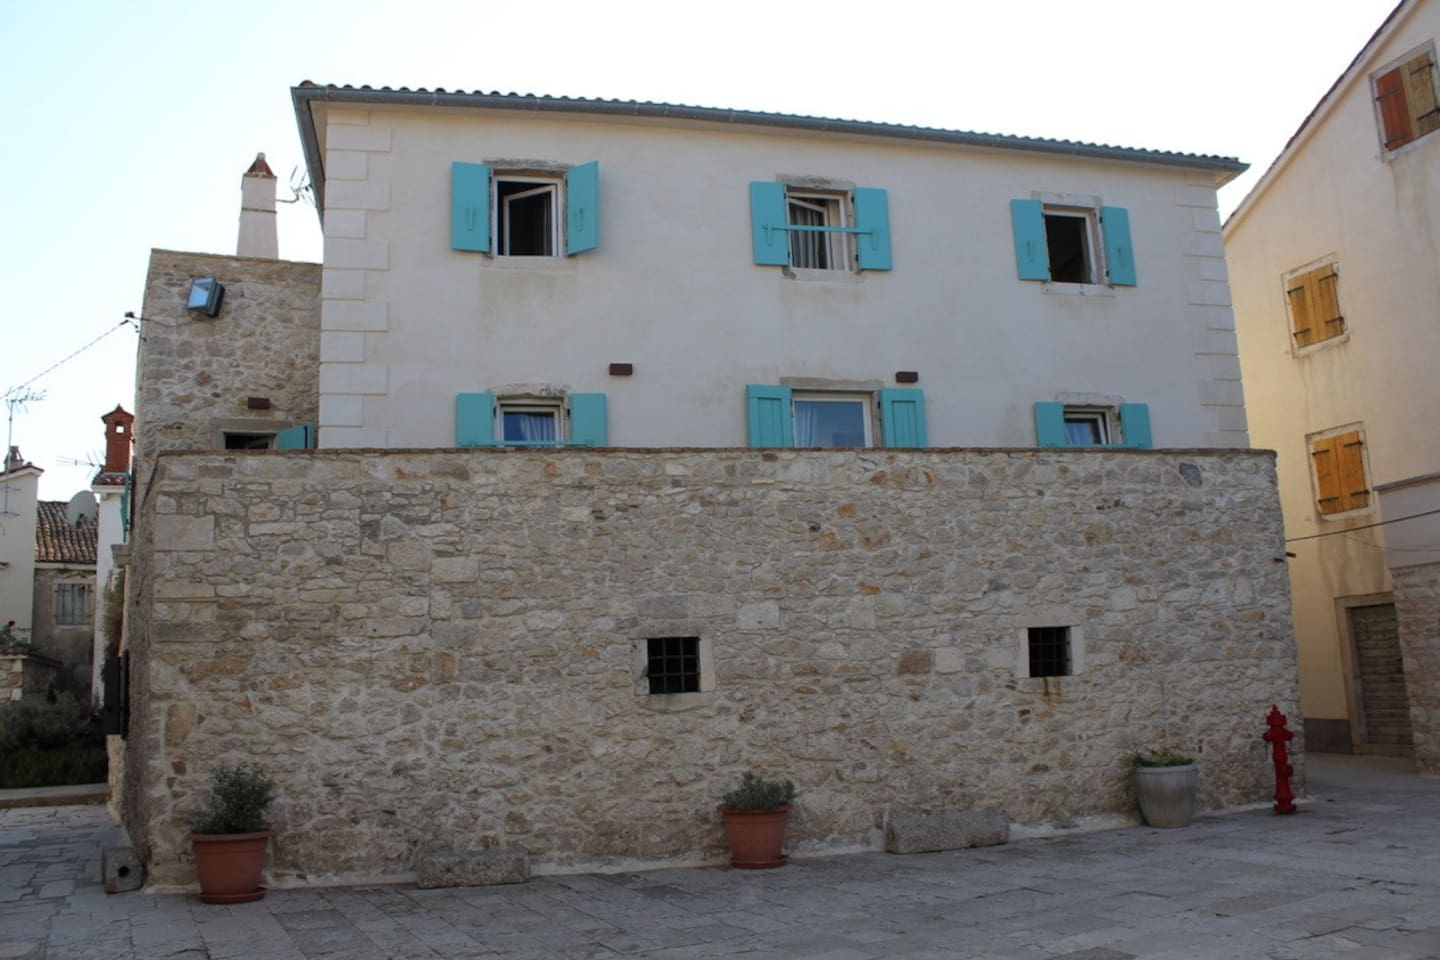 The Wine Cellar on the ground floor and the Apartments on the upper floors.